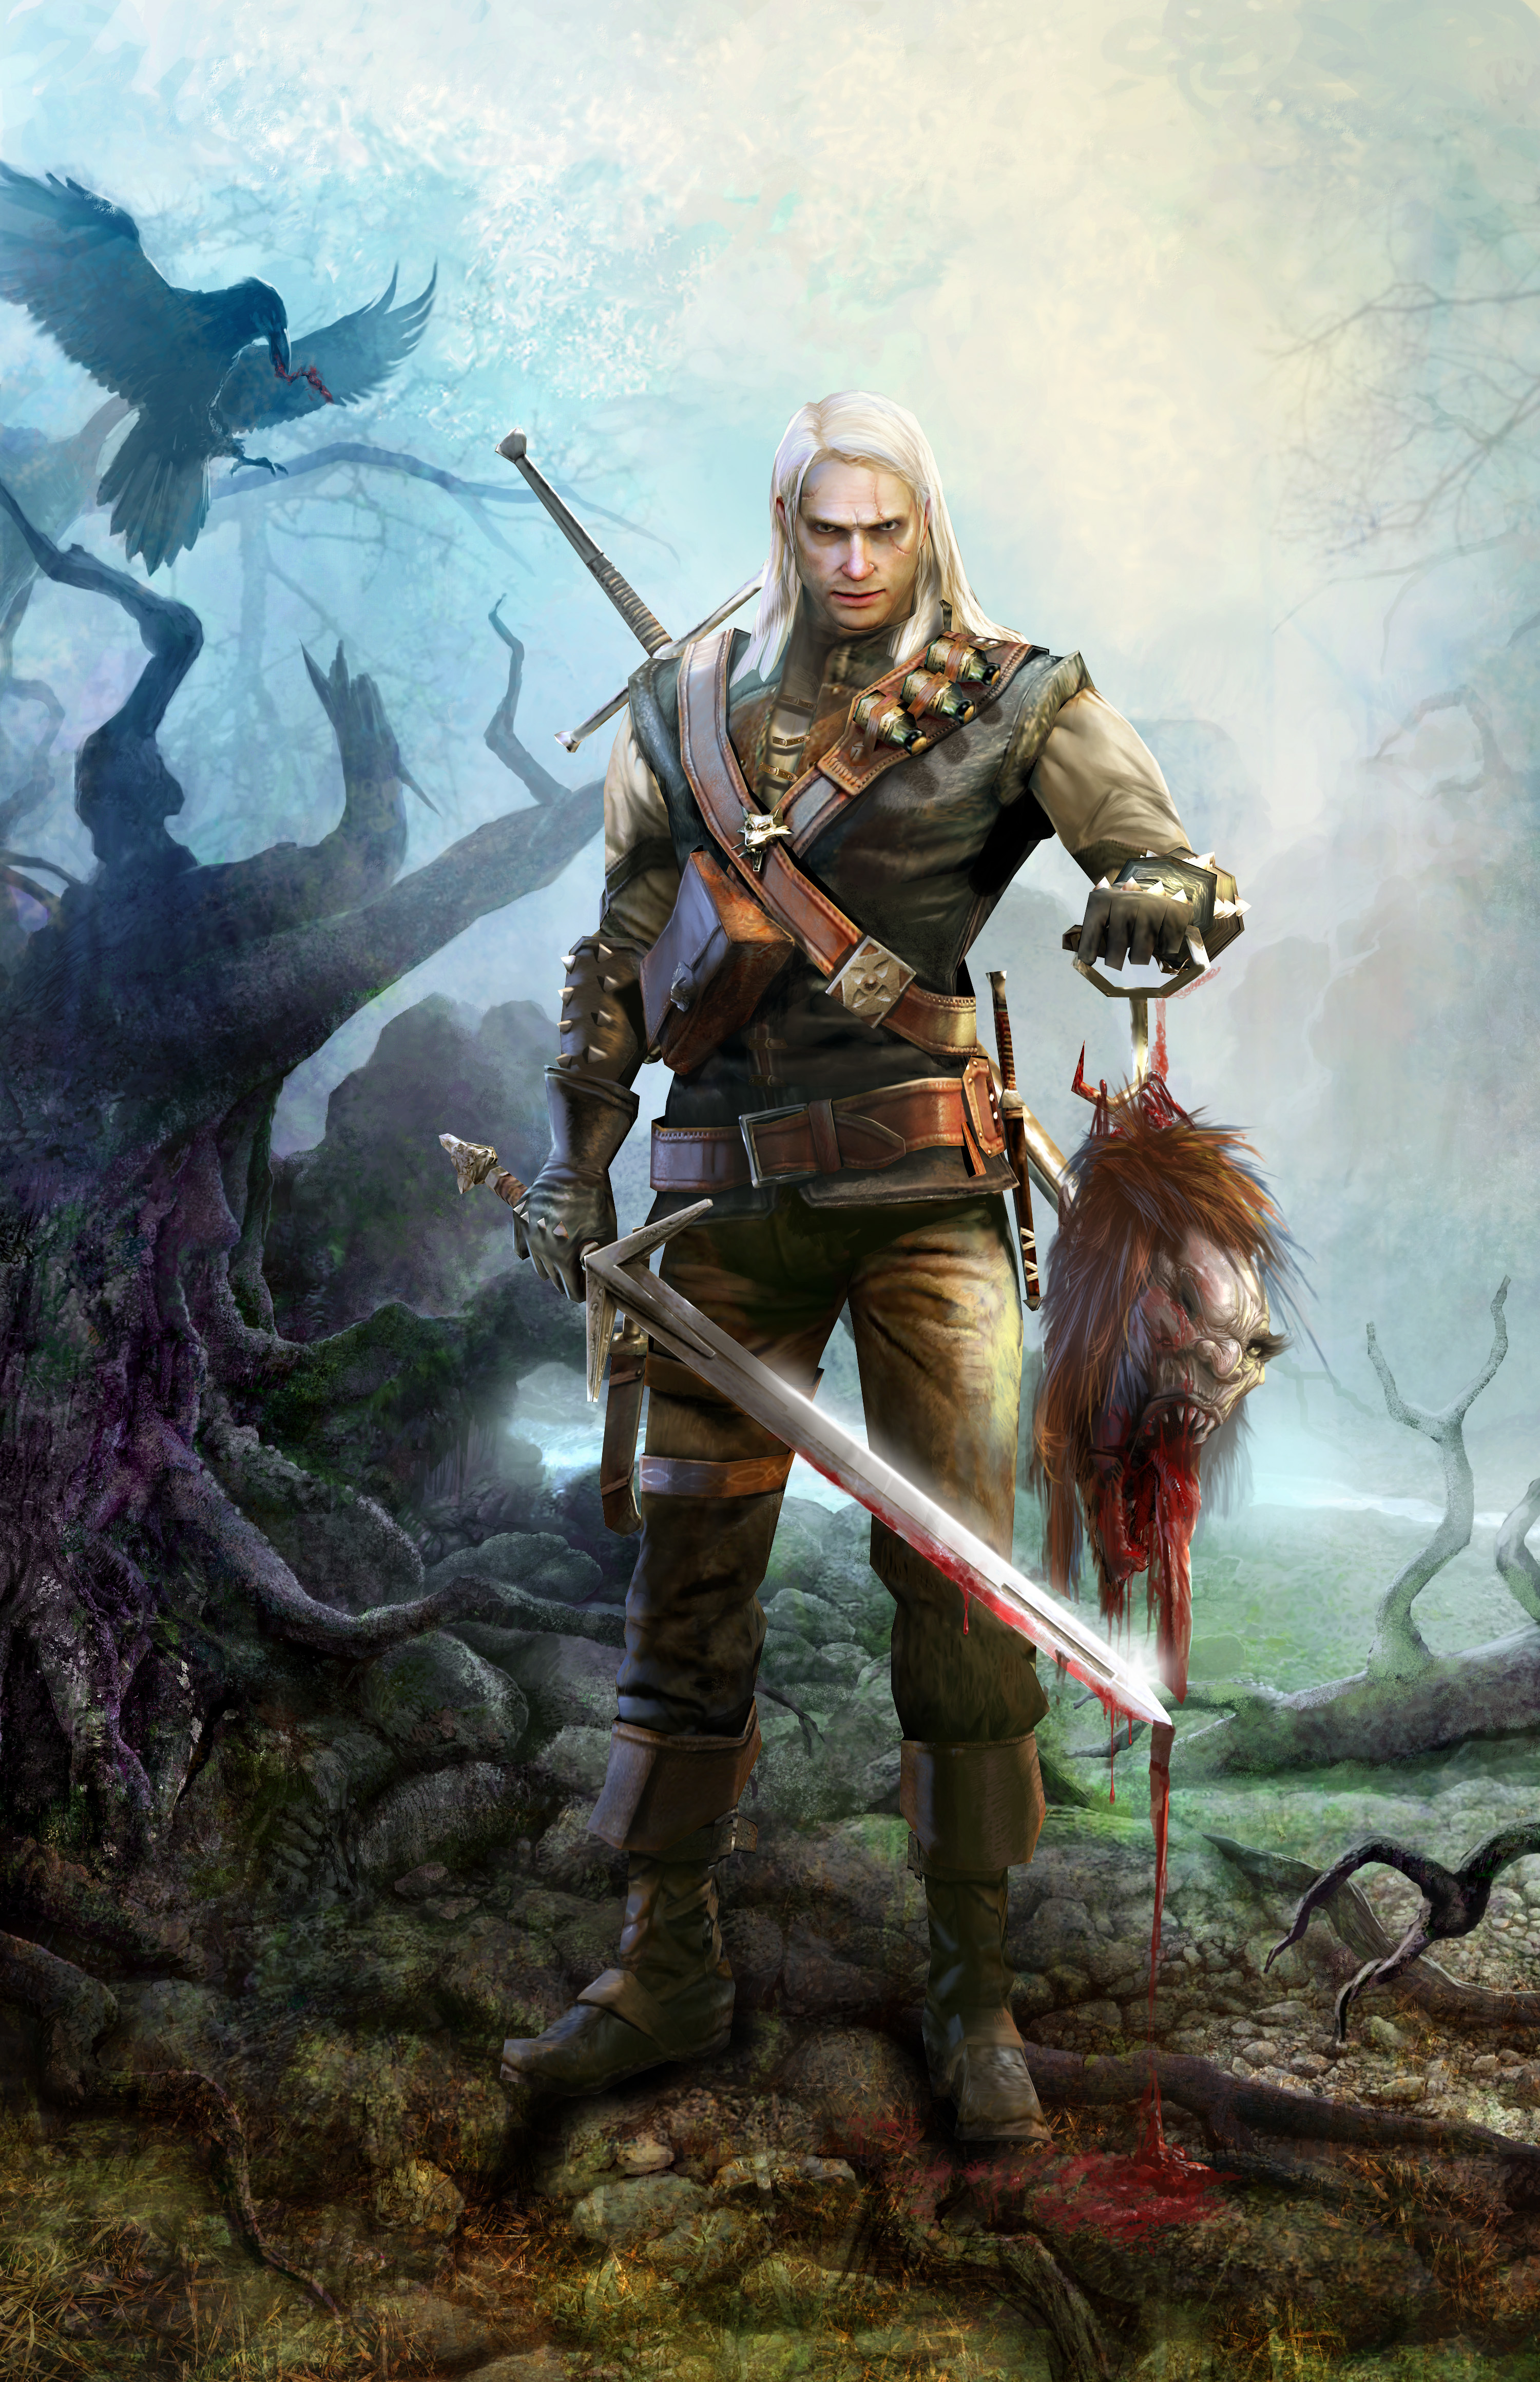 The witcher spzr high HD Wallpaper